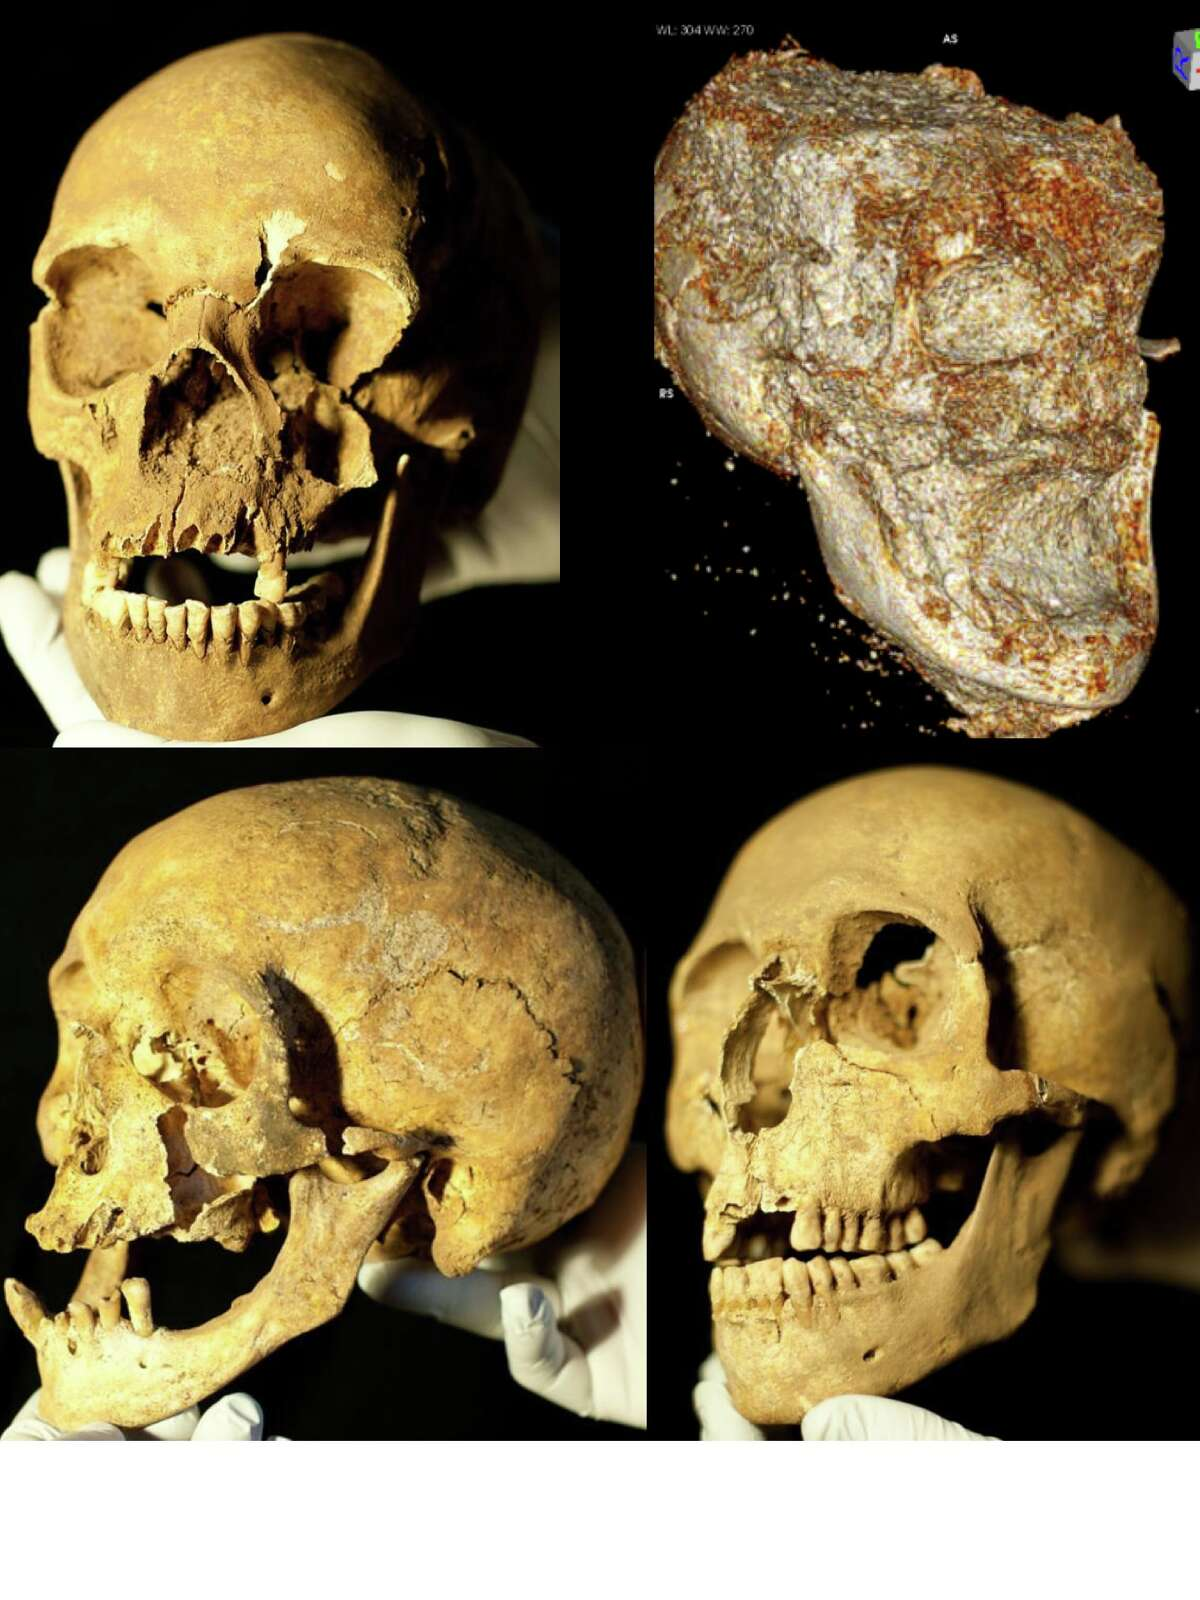 Four skulls were excavated from the hospital construction site. A CT scan was made of one skull, which was too fragile.